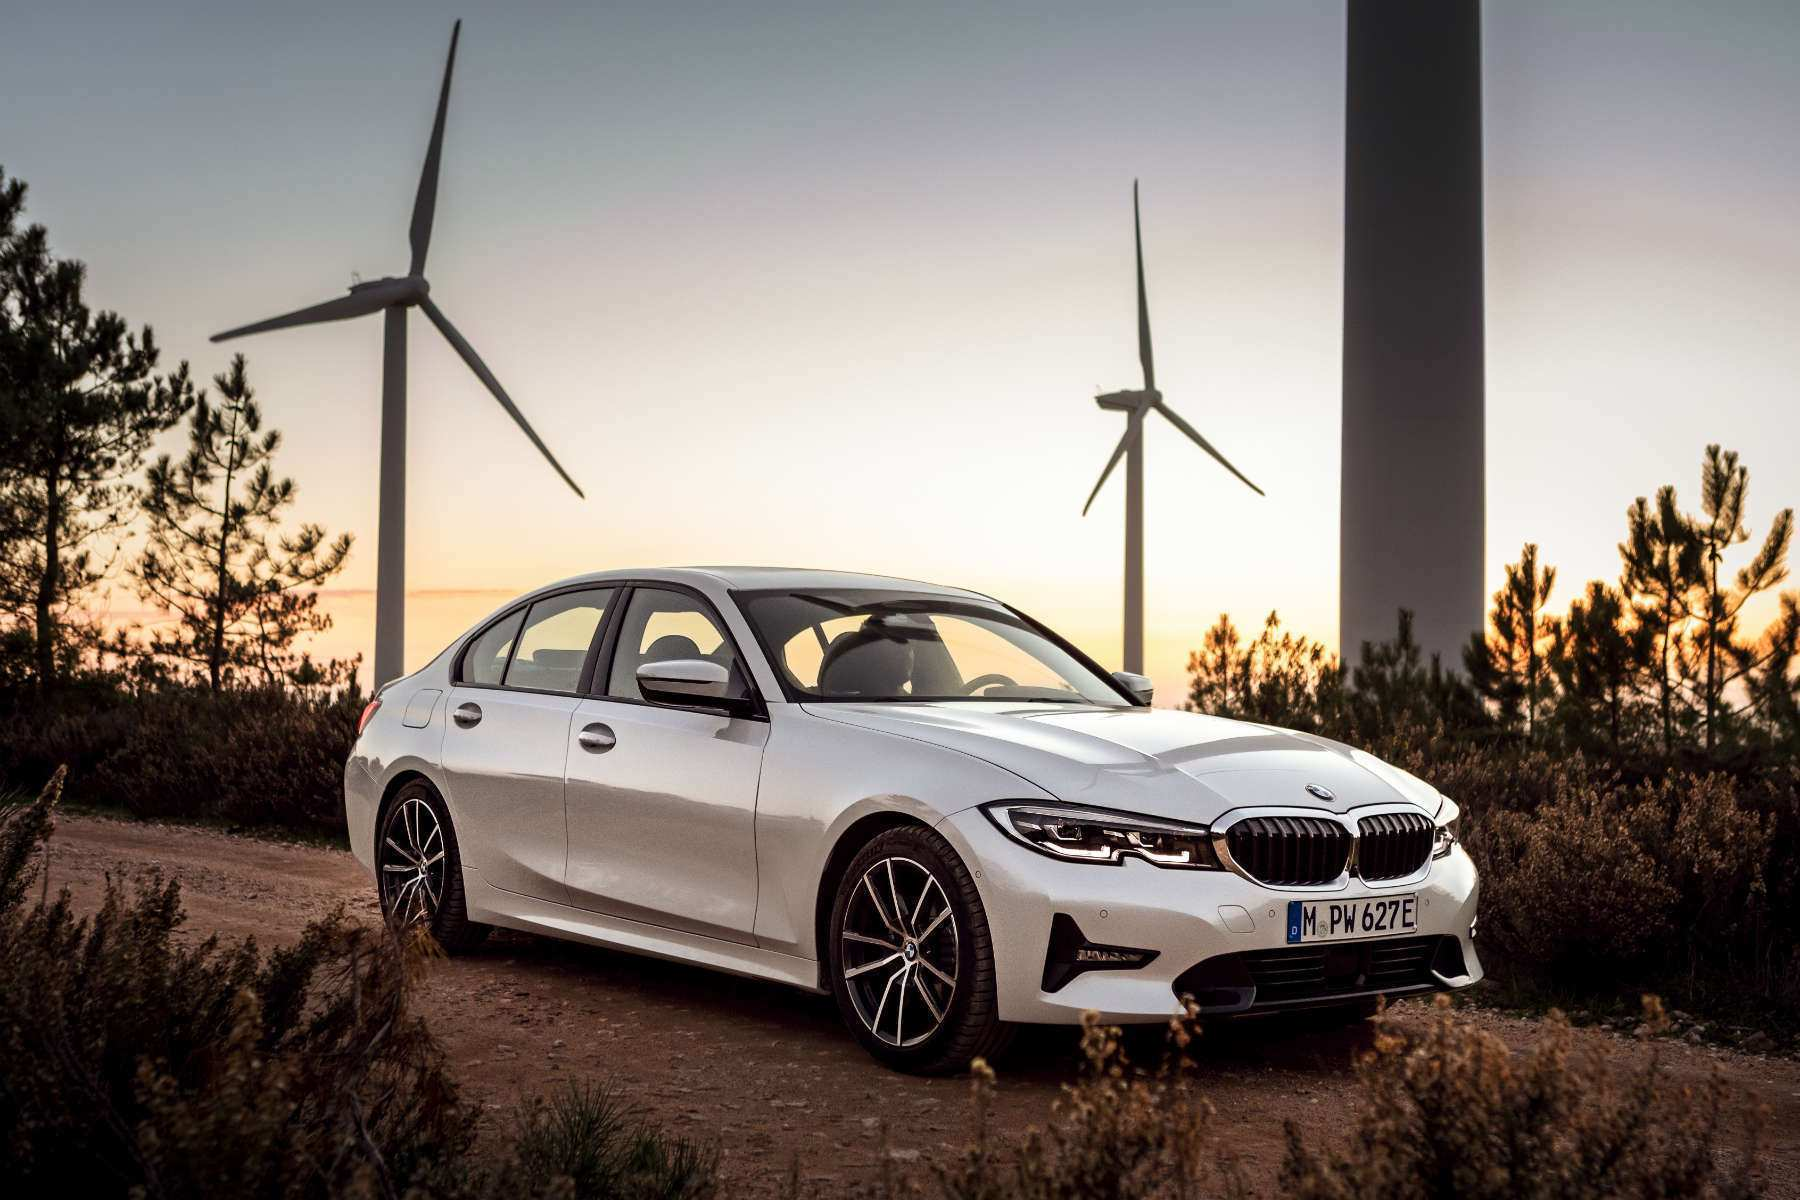 52 Concept of 2019 Bmw Plug In Hybrid Reviews for 2019 Bmw Plug In Hybrid